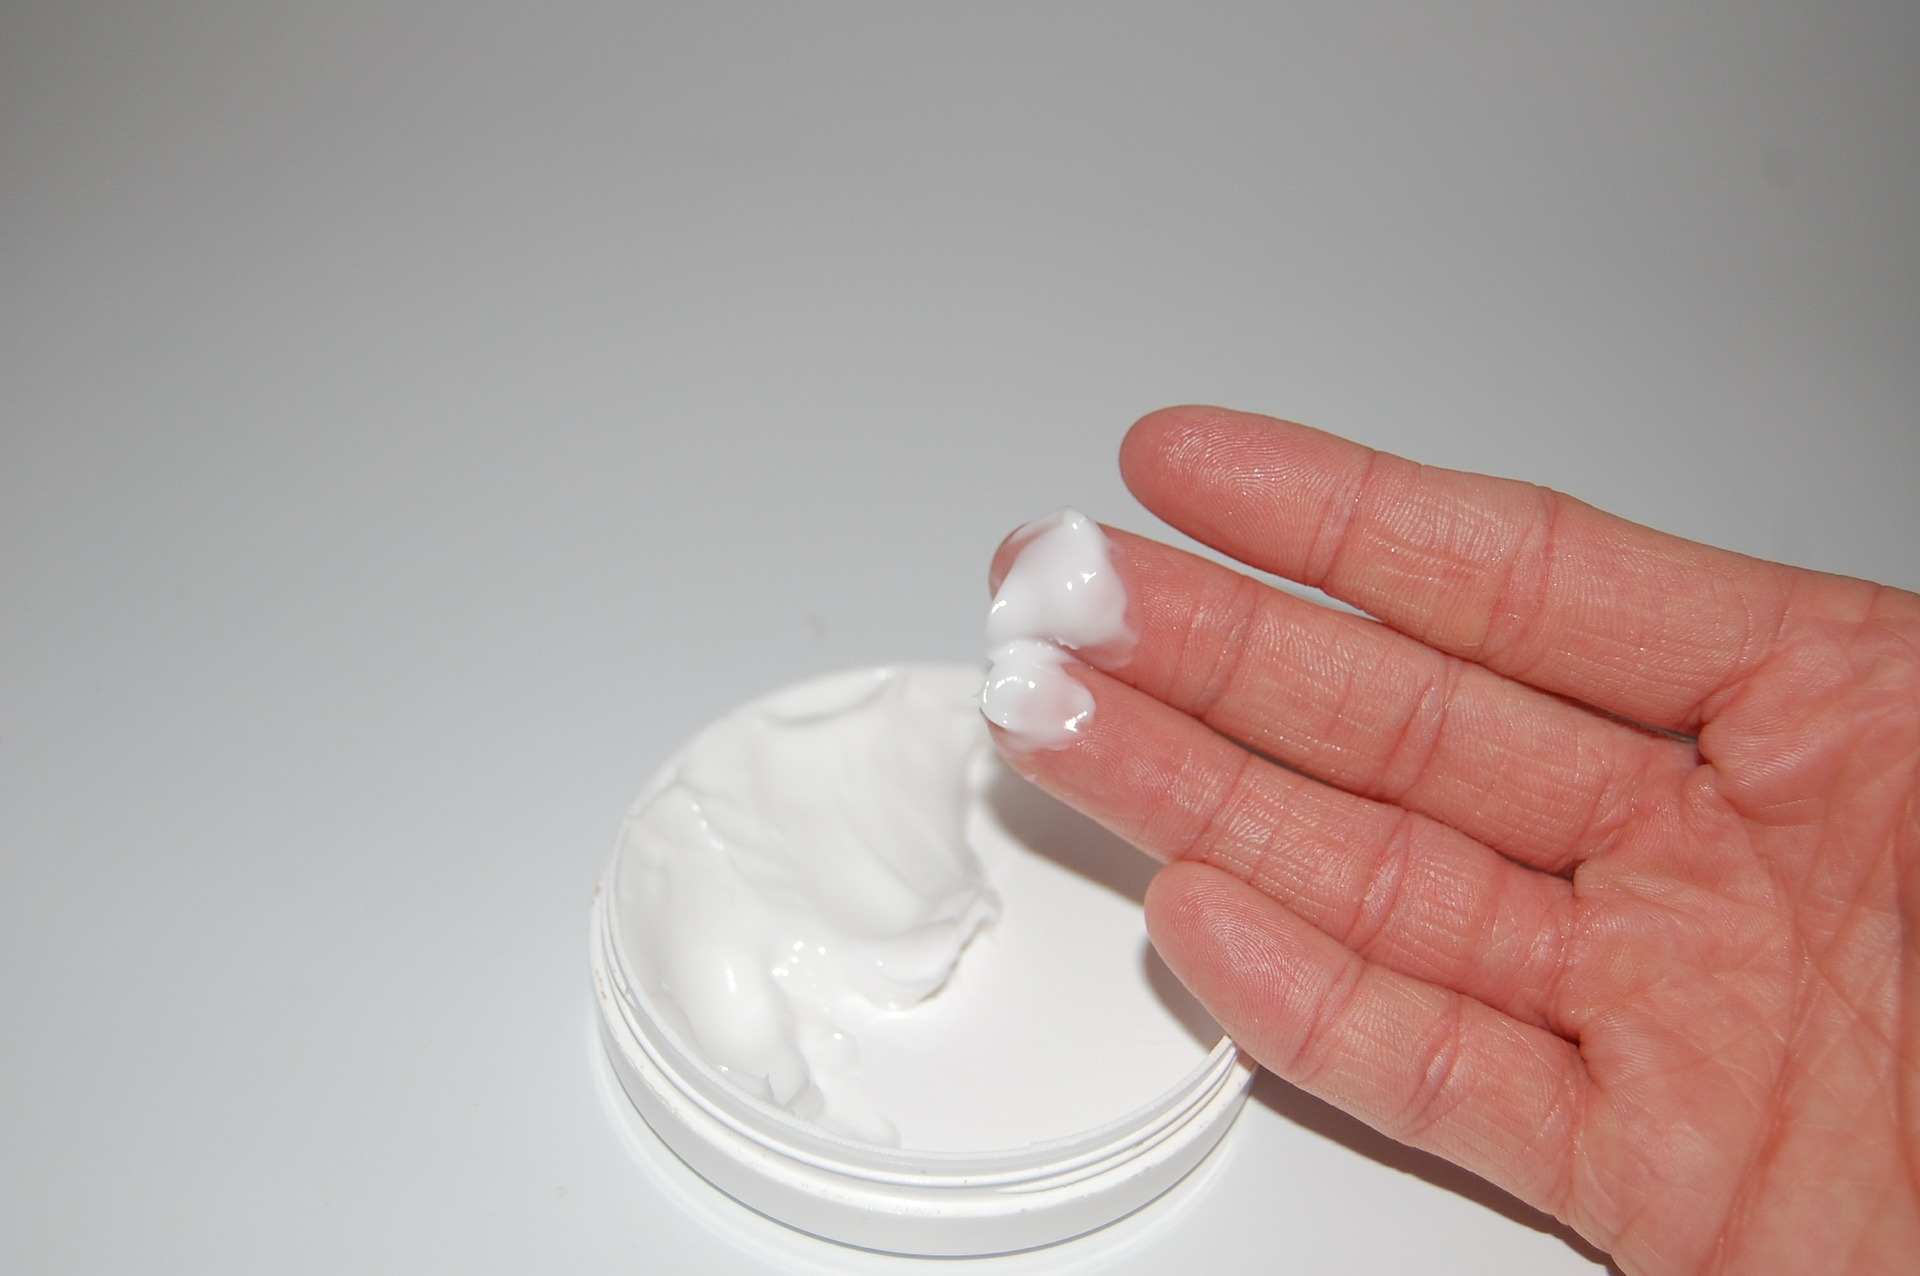 Everything you need to know about using Lubes!